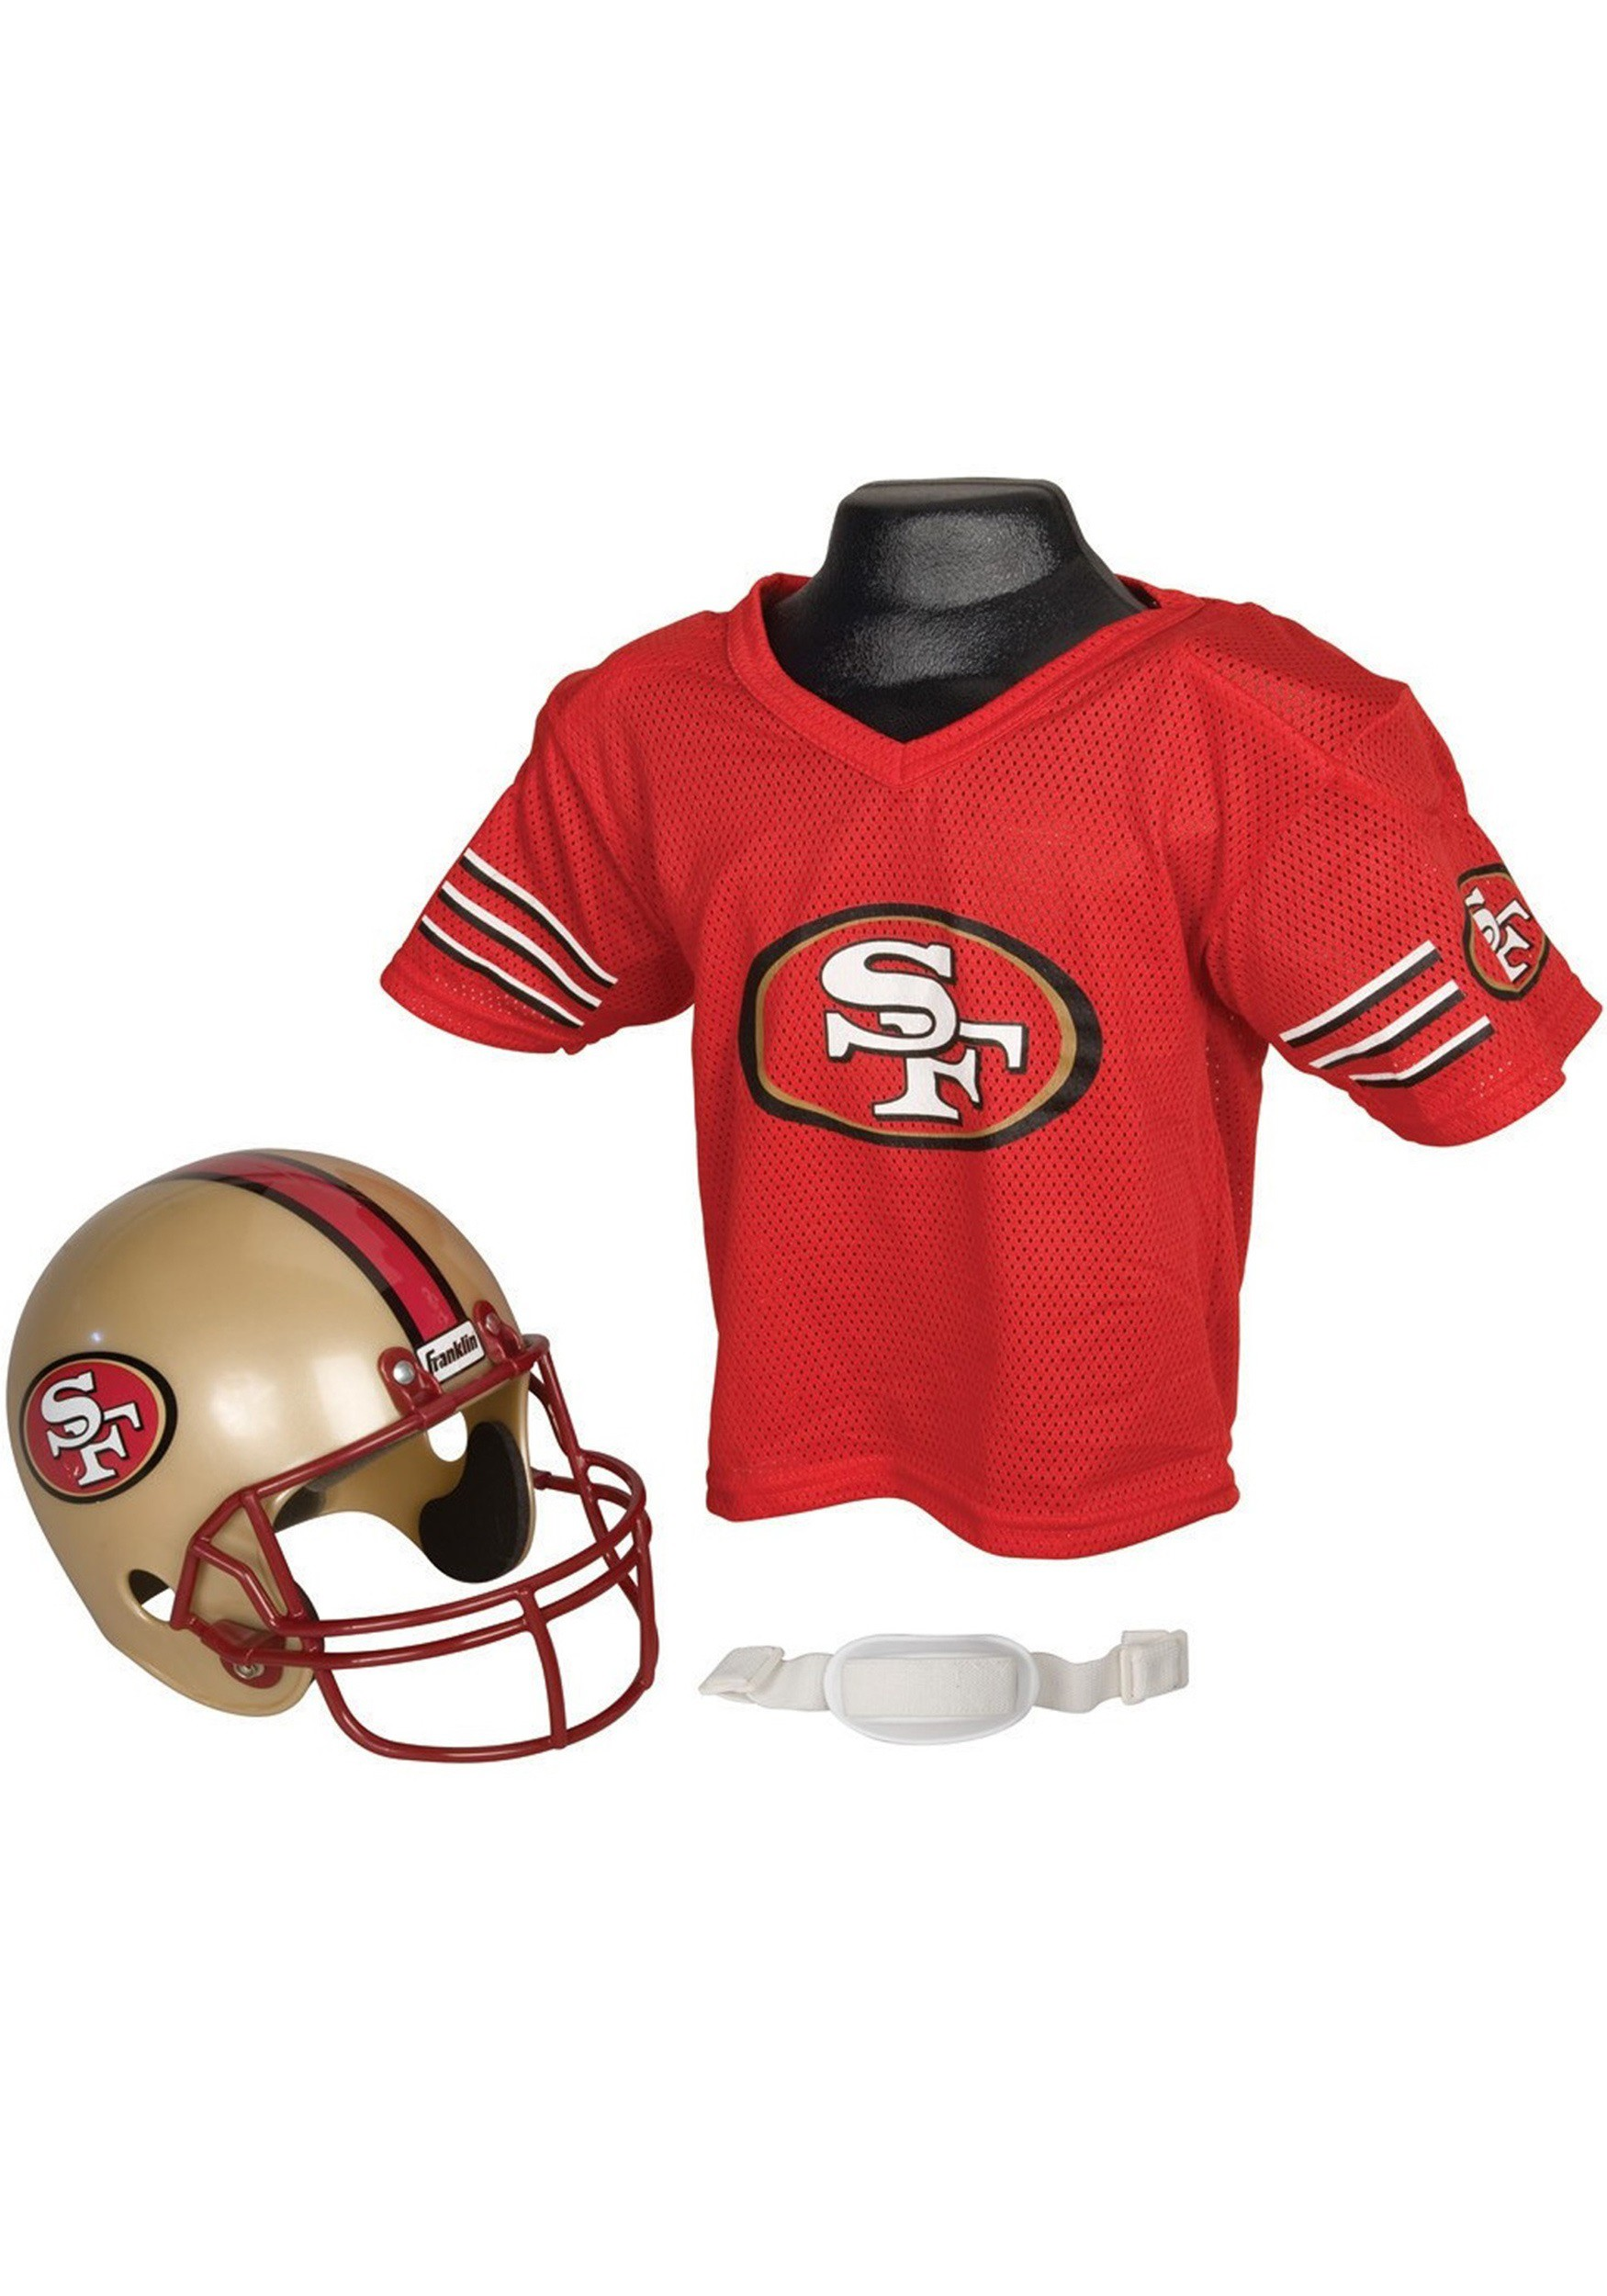 Child NFL San Francisco 49ers Helmet and Jersey Costume Set b4ea7cbb2